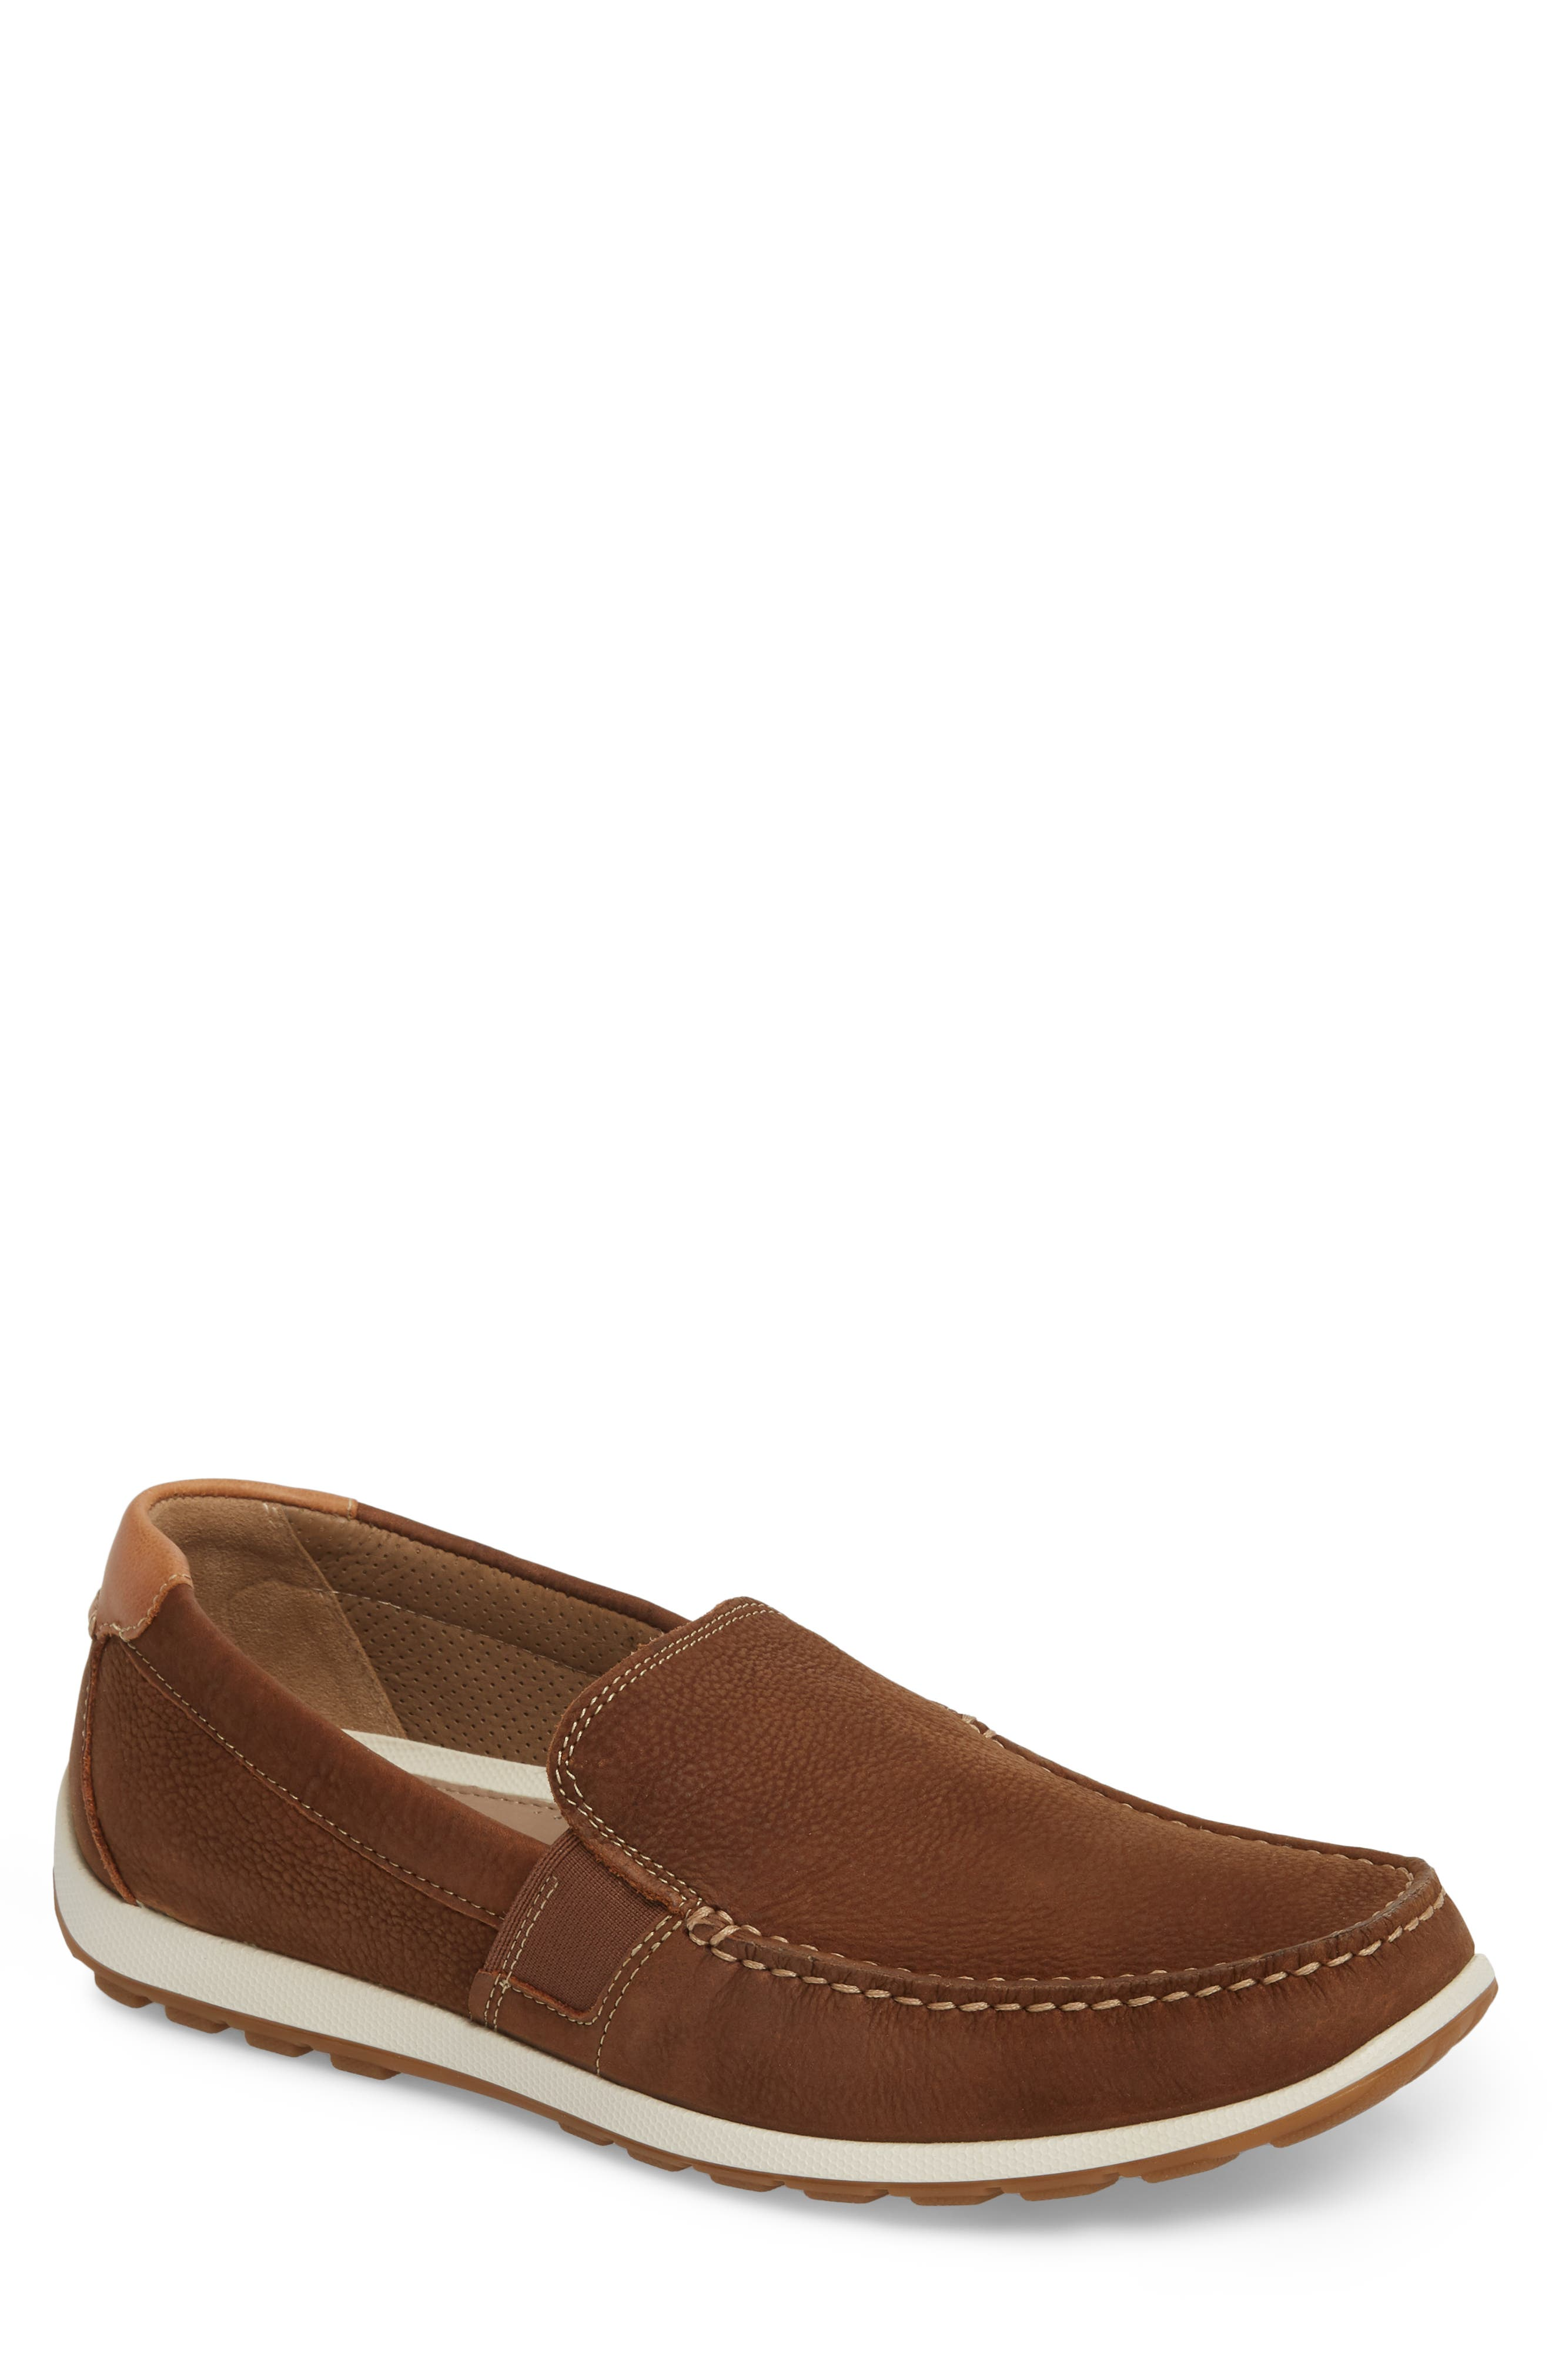 DIP Lux Moc Toe Driver,                         Main,                         color, Mahogany Leather